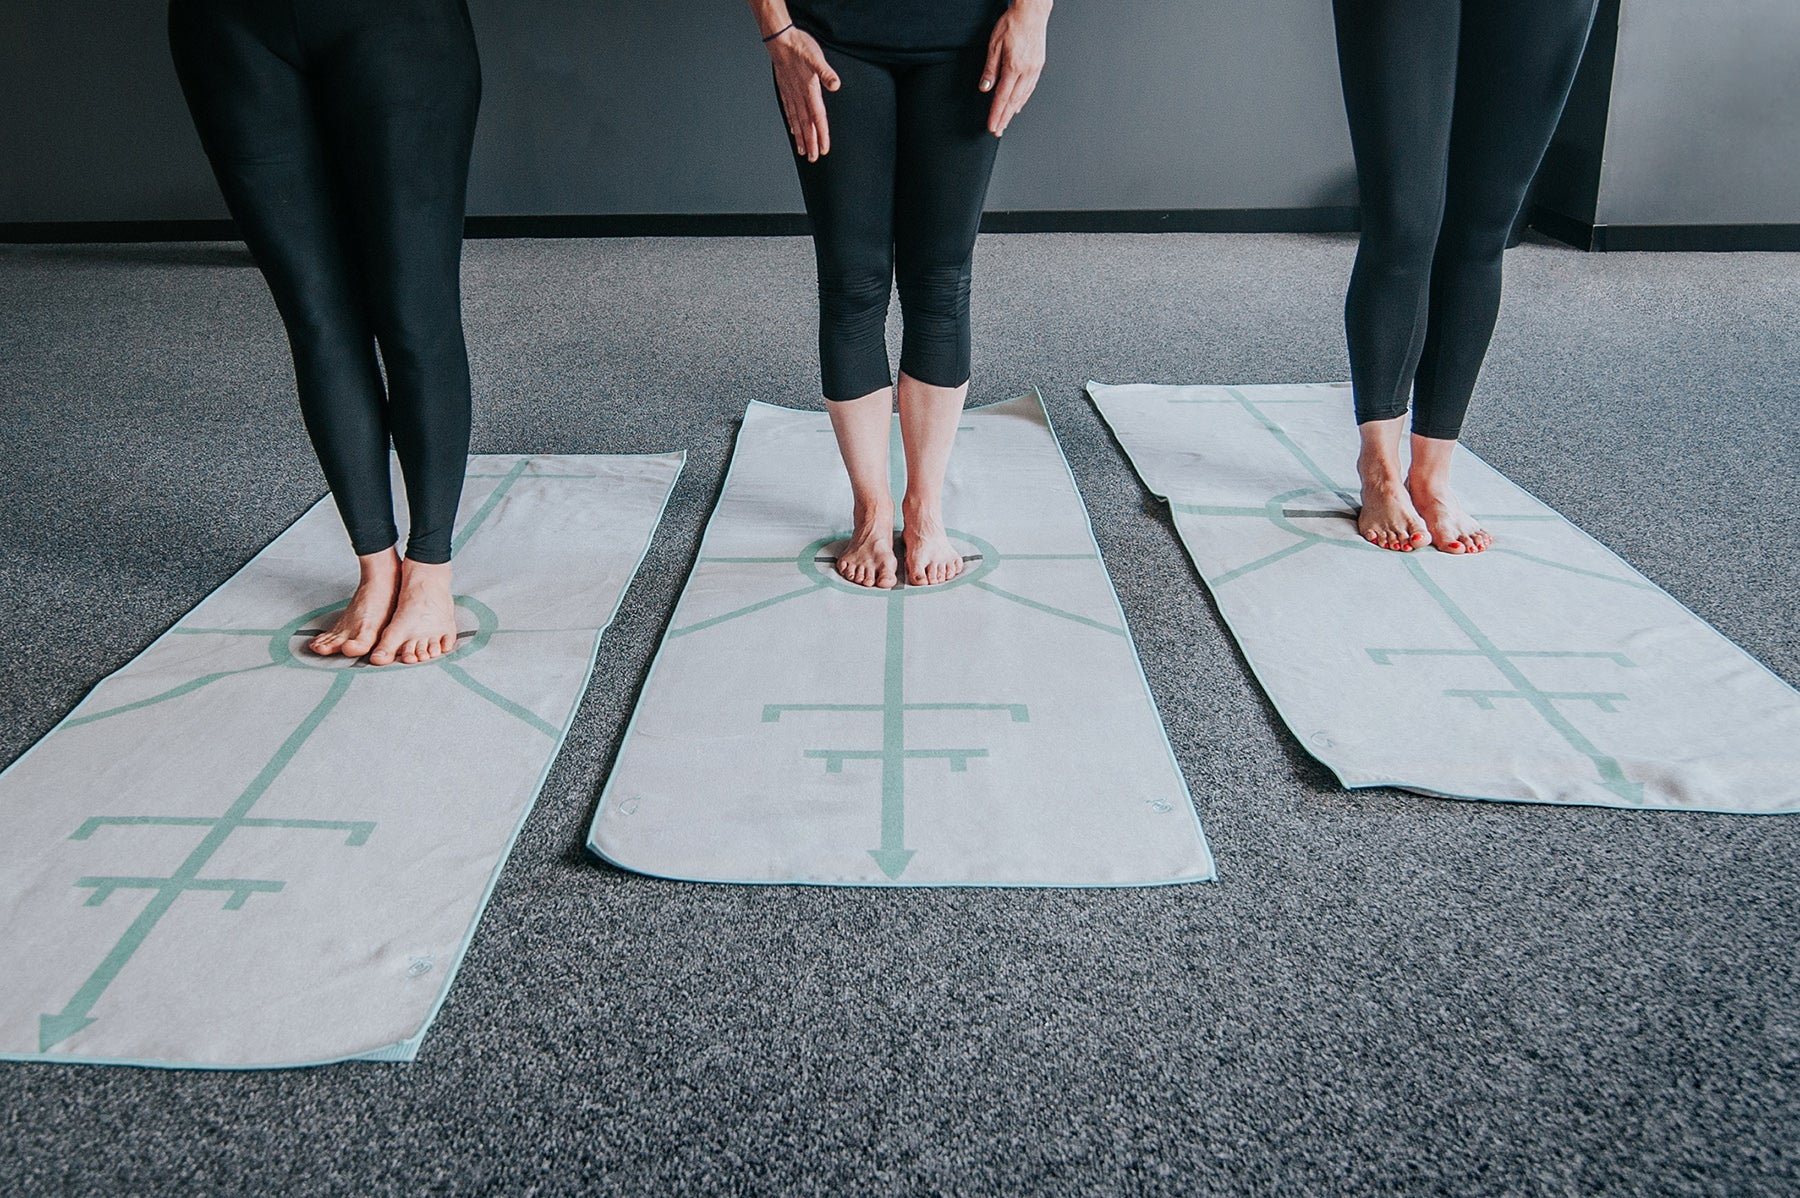 Bikram yoga students standing in the centre circle of the archer hot yoga towel before beginning half moon pose with hands to feet pose.